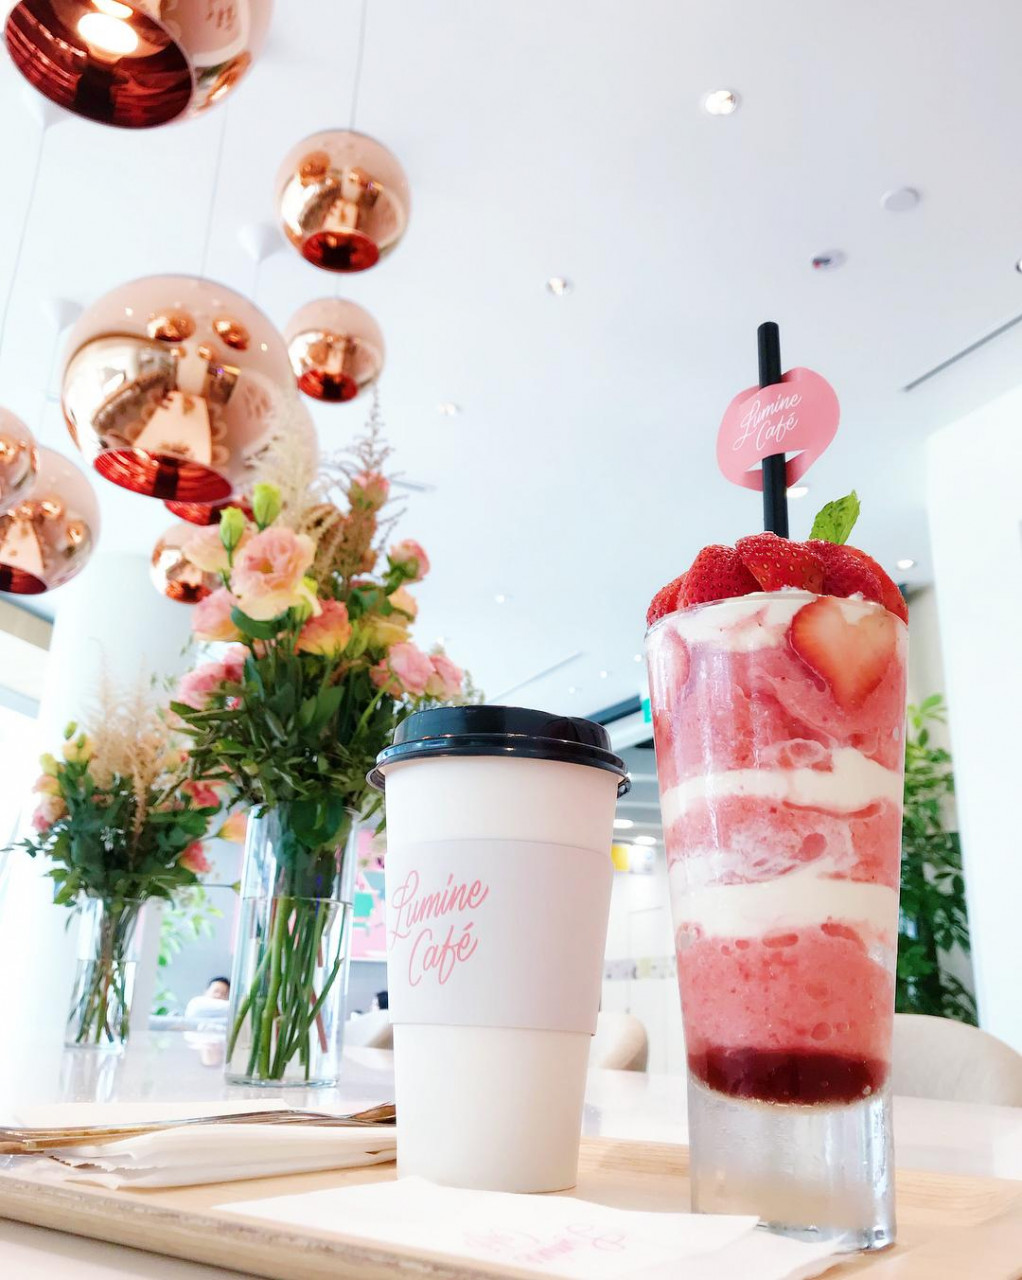 lumine cafe beverages